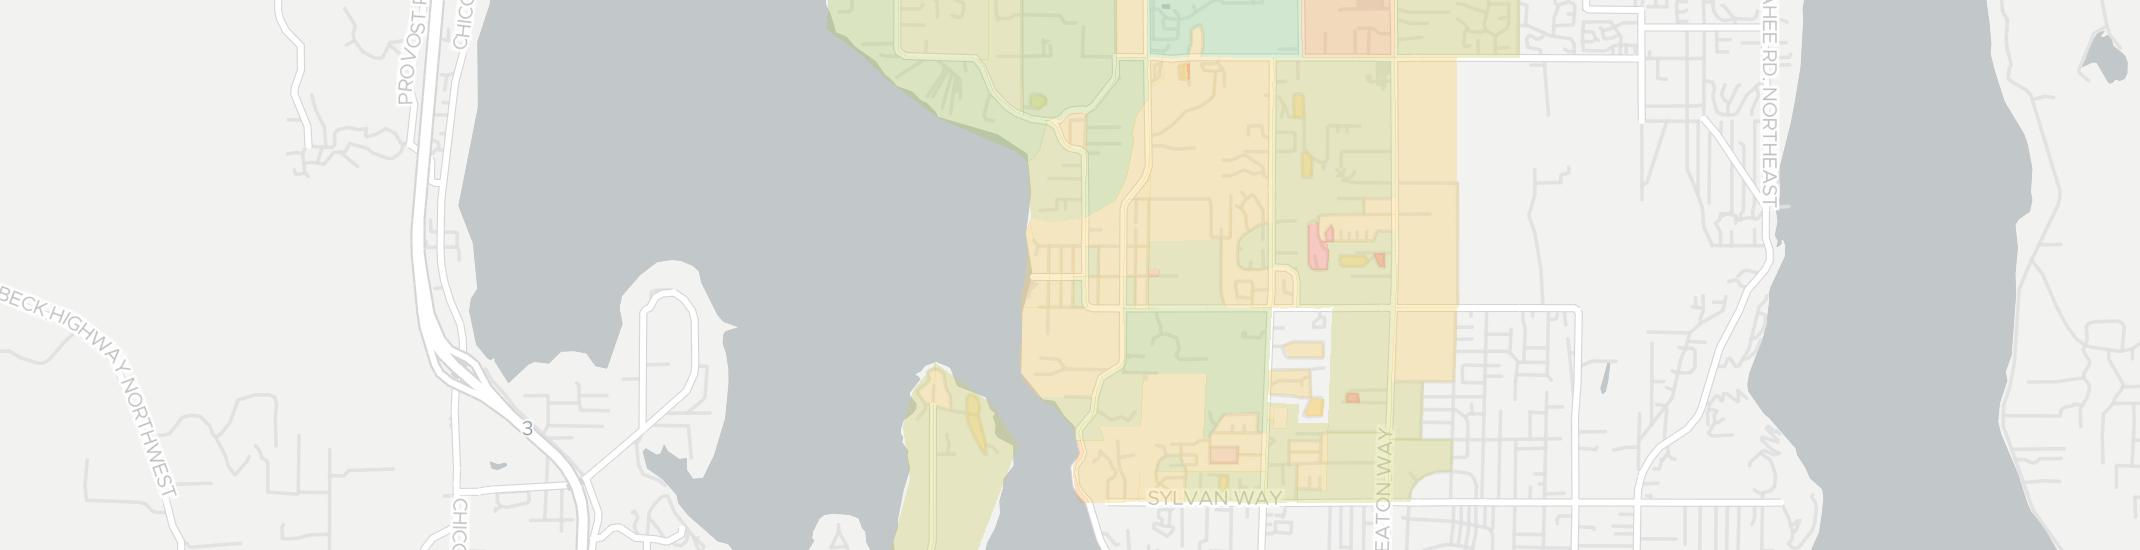 Tracyton Internet Competition Map. Click for interactive map.